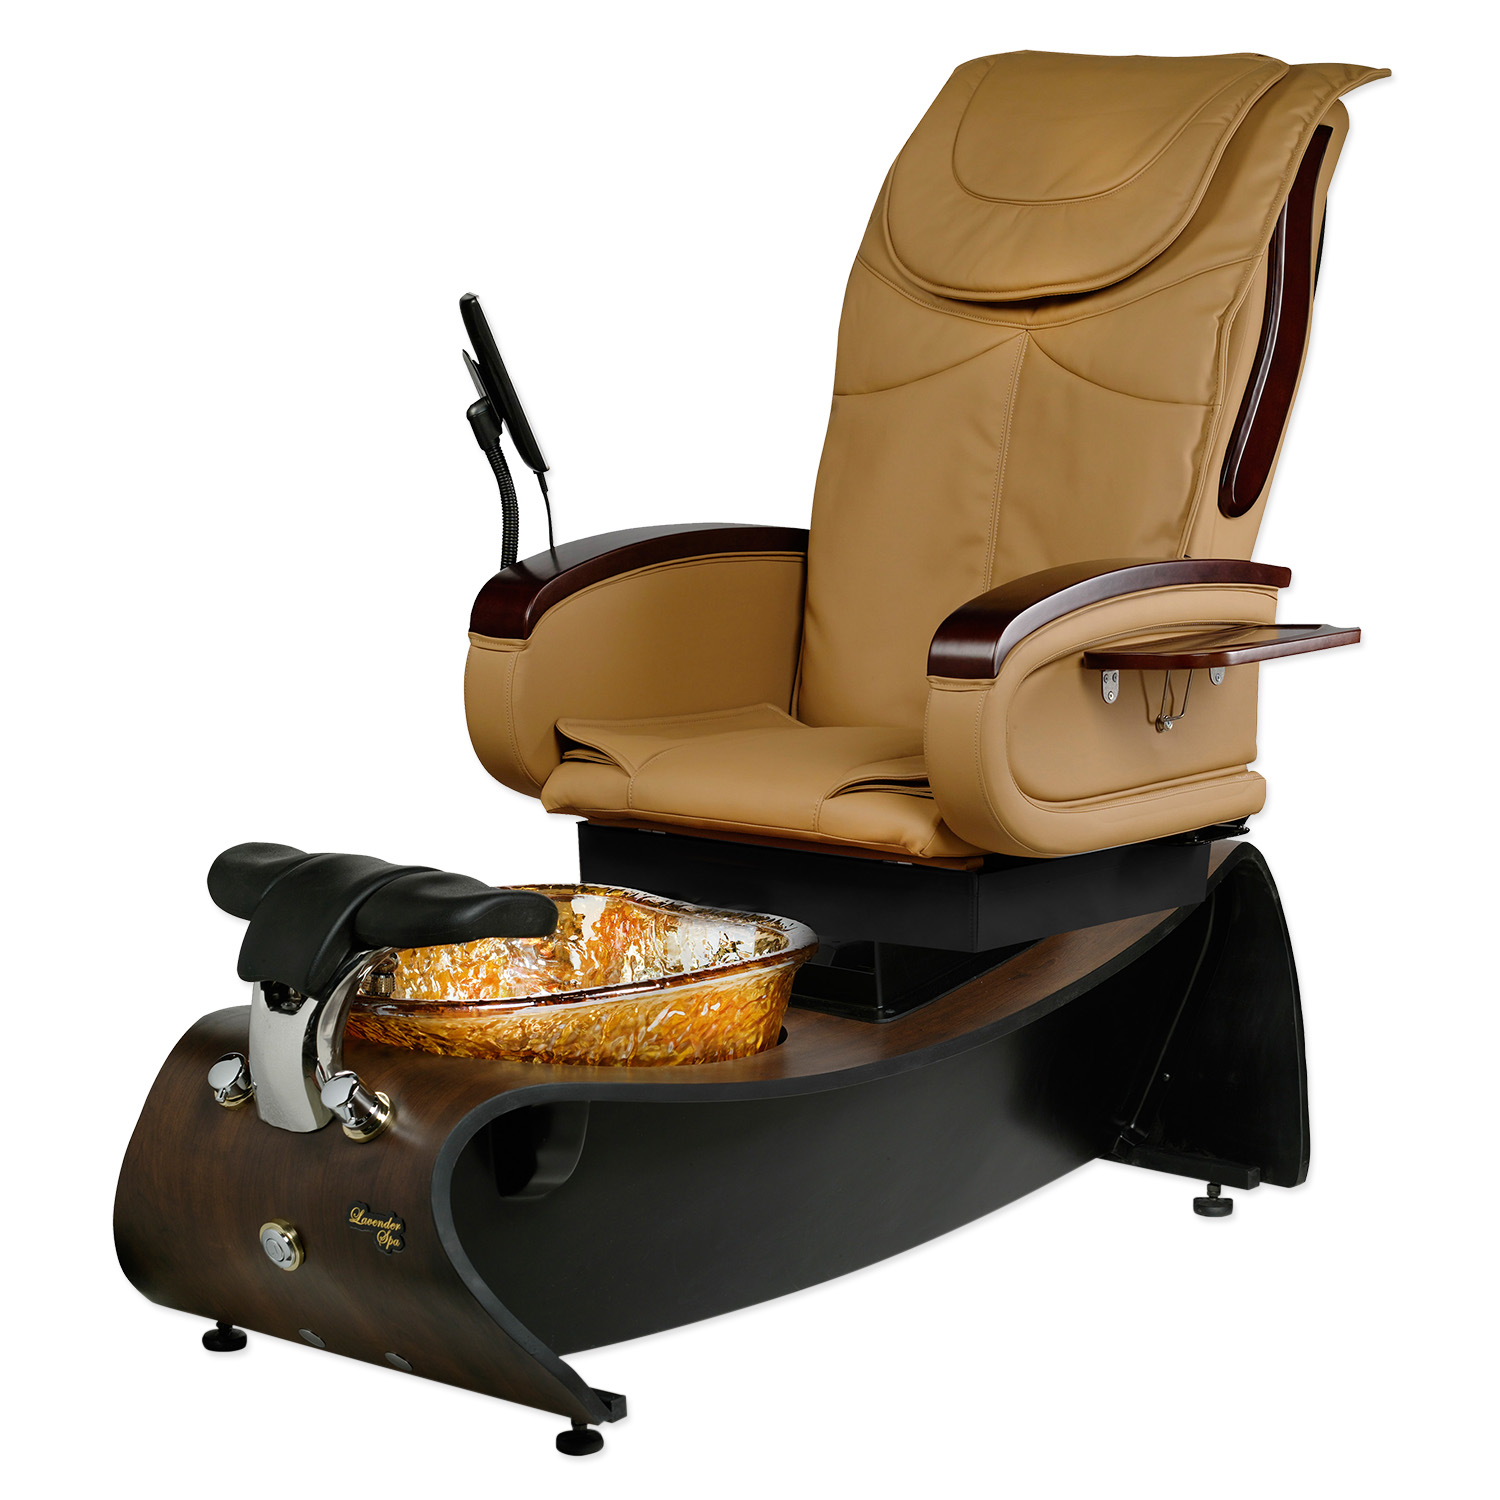 Gulfstream Lavender 3  Pedicure Spa 9640 Chair  main product image